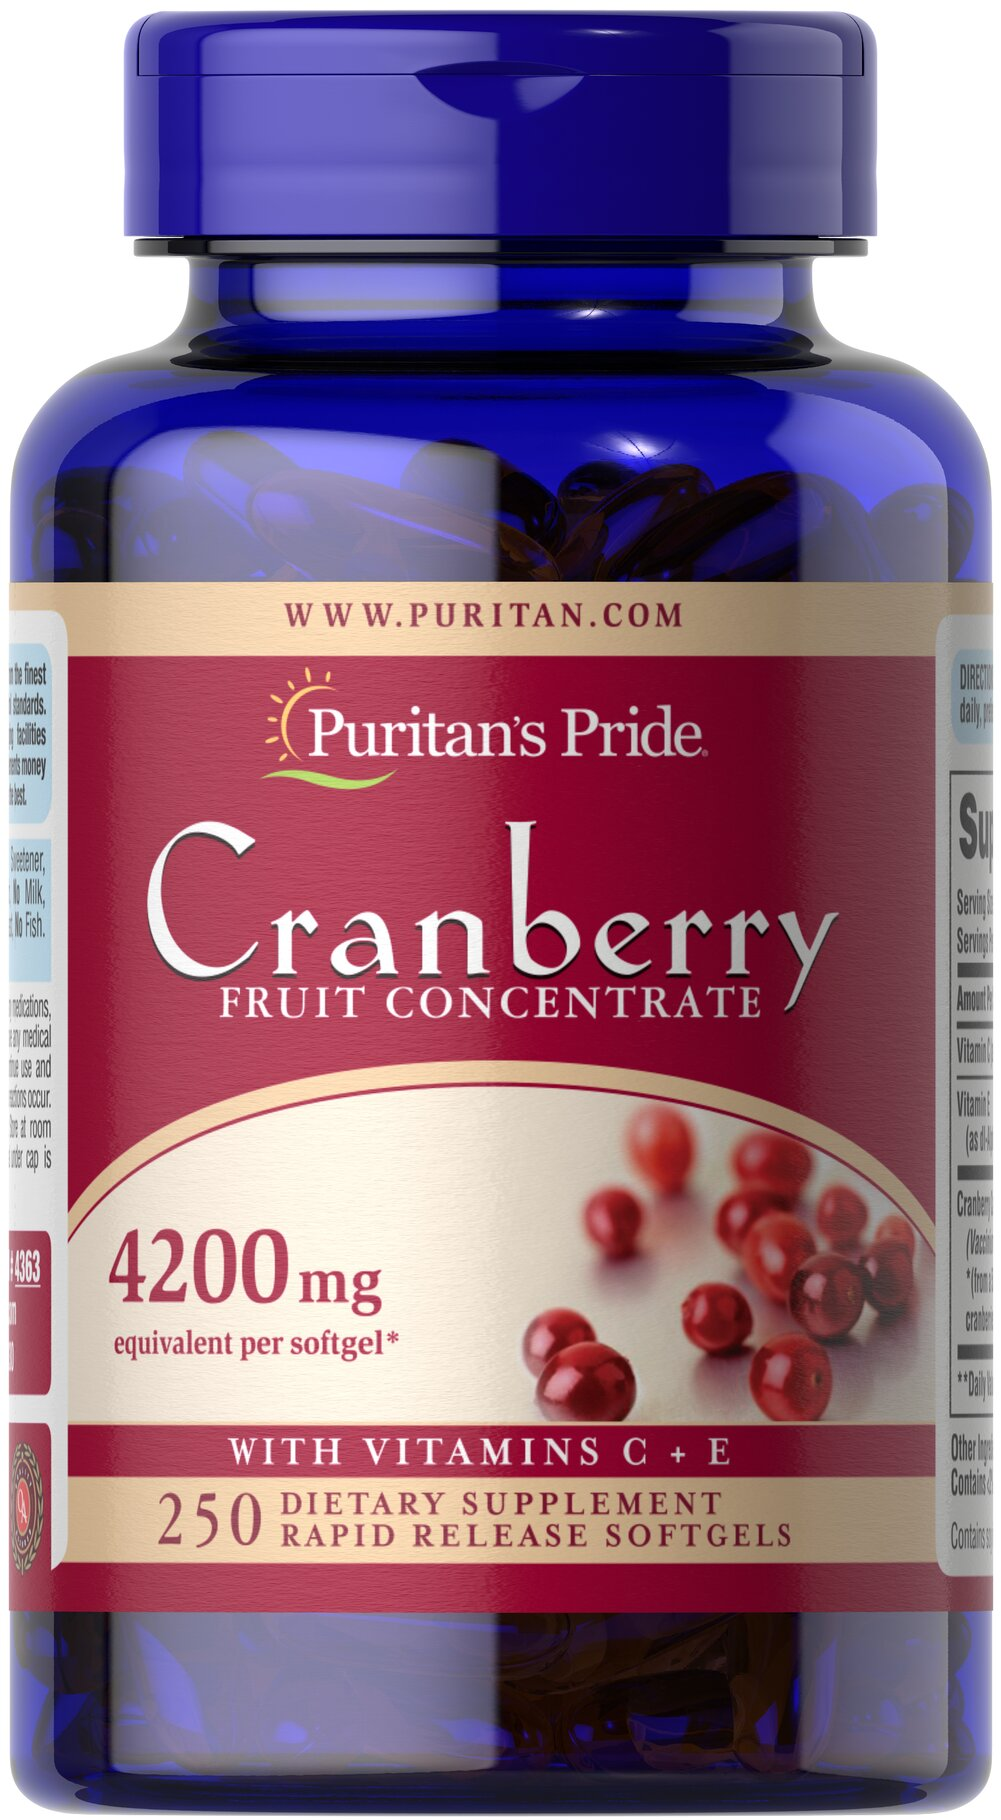 Cranberry Fruit Concentrate with C & E 4200 mg <p>This product has the benefits of concentrated cranberry without the unnecessary sugar and calories. Each of our concentrated (4200 mg) Cranberry softgels provide the equivalent of (8400 mg) of fresh cranberries plus (40 mg) of Vitamin C and 6 IU of Vitamin E.  Adults can take two softgels 3 times daily, after meals.</p> 250 Softgels 4200 mg $36.99